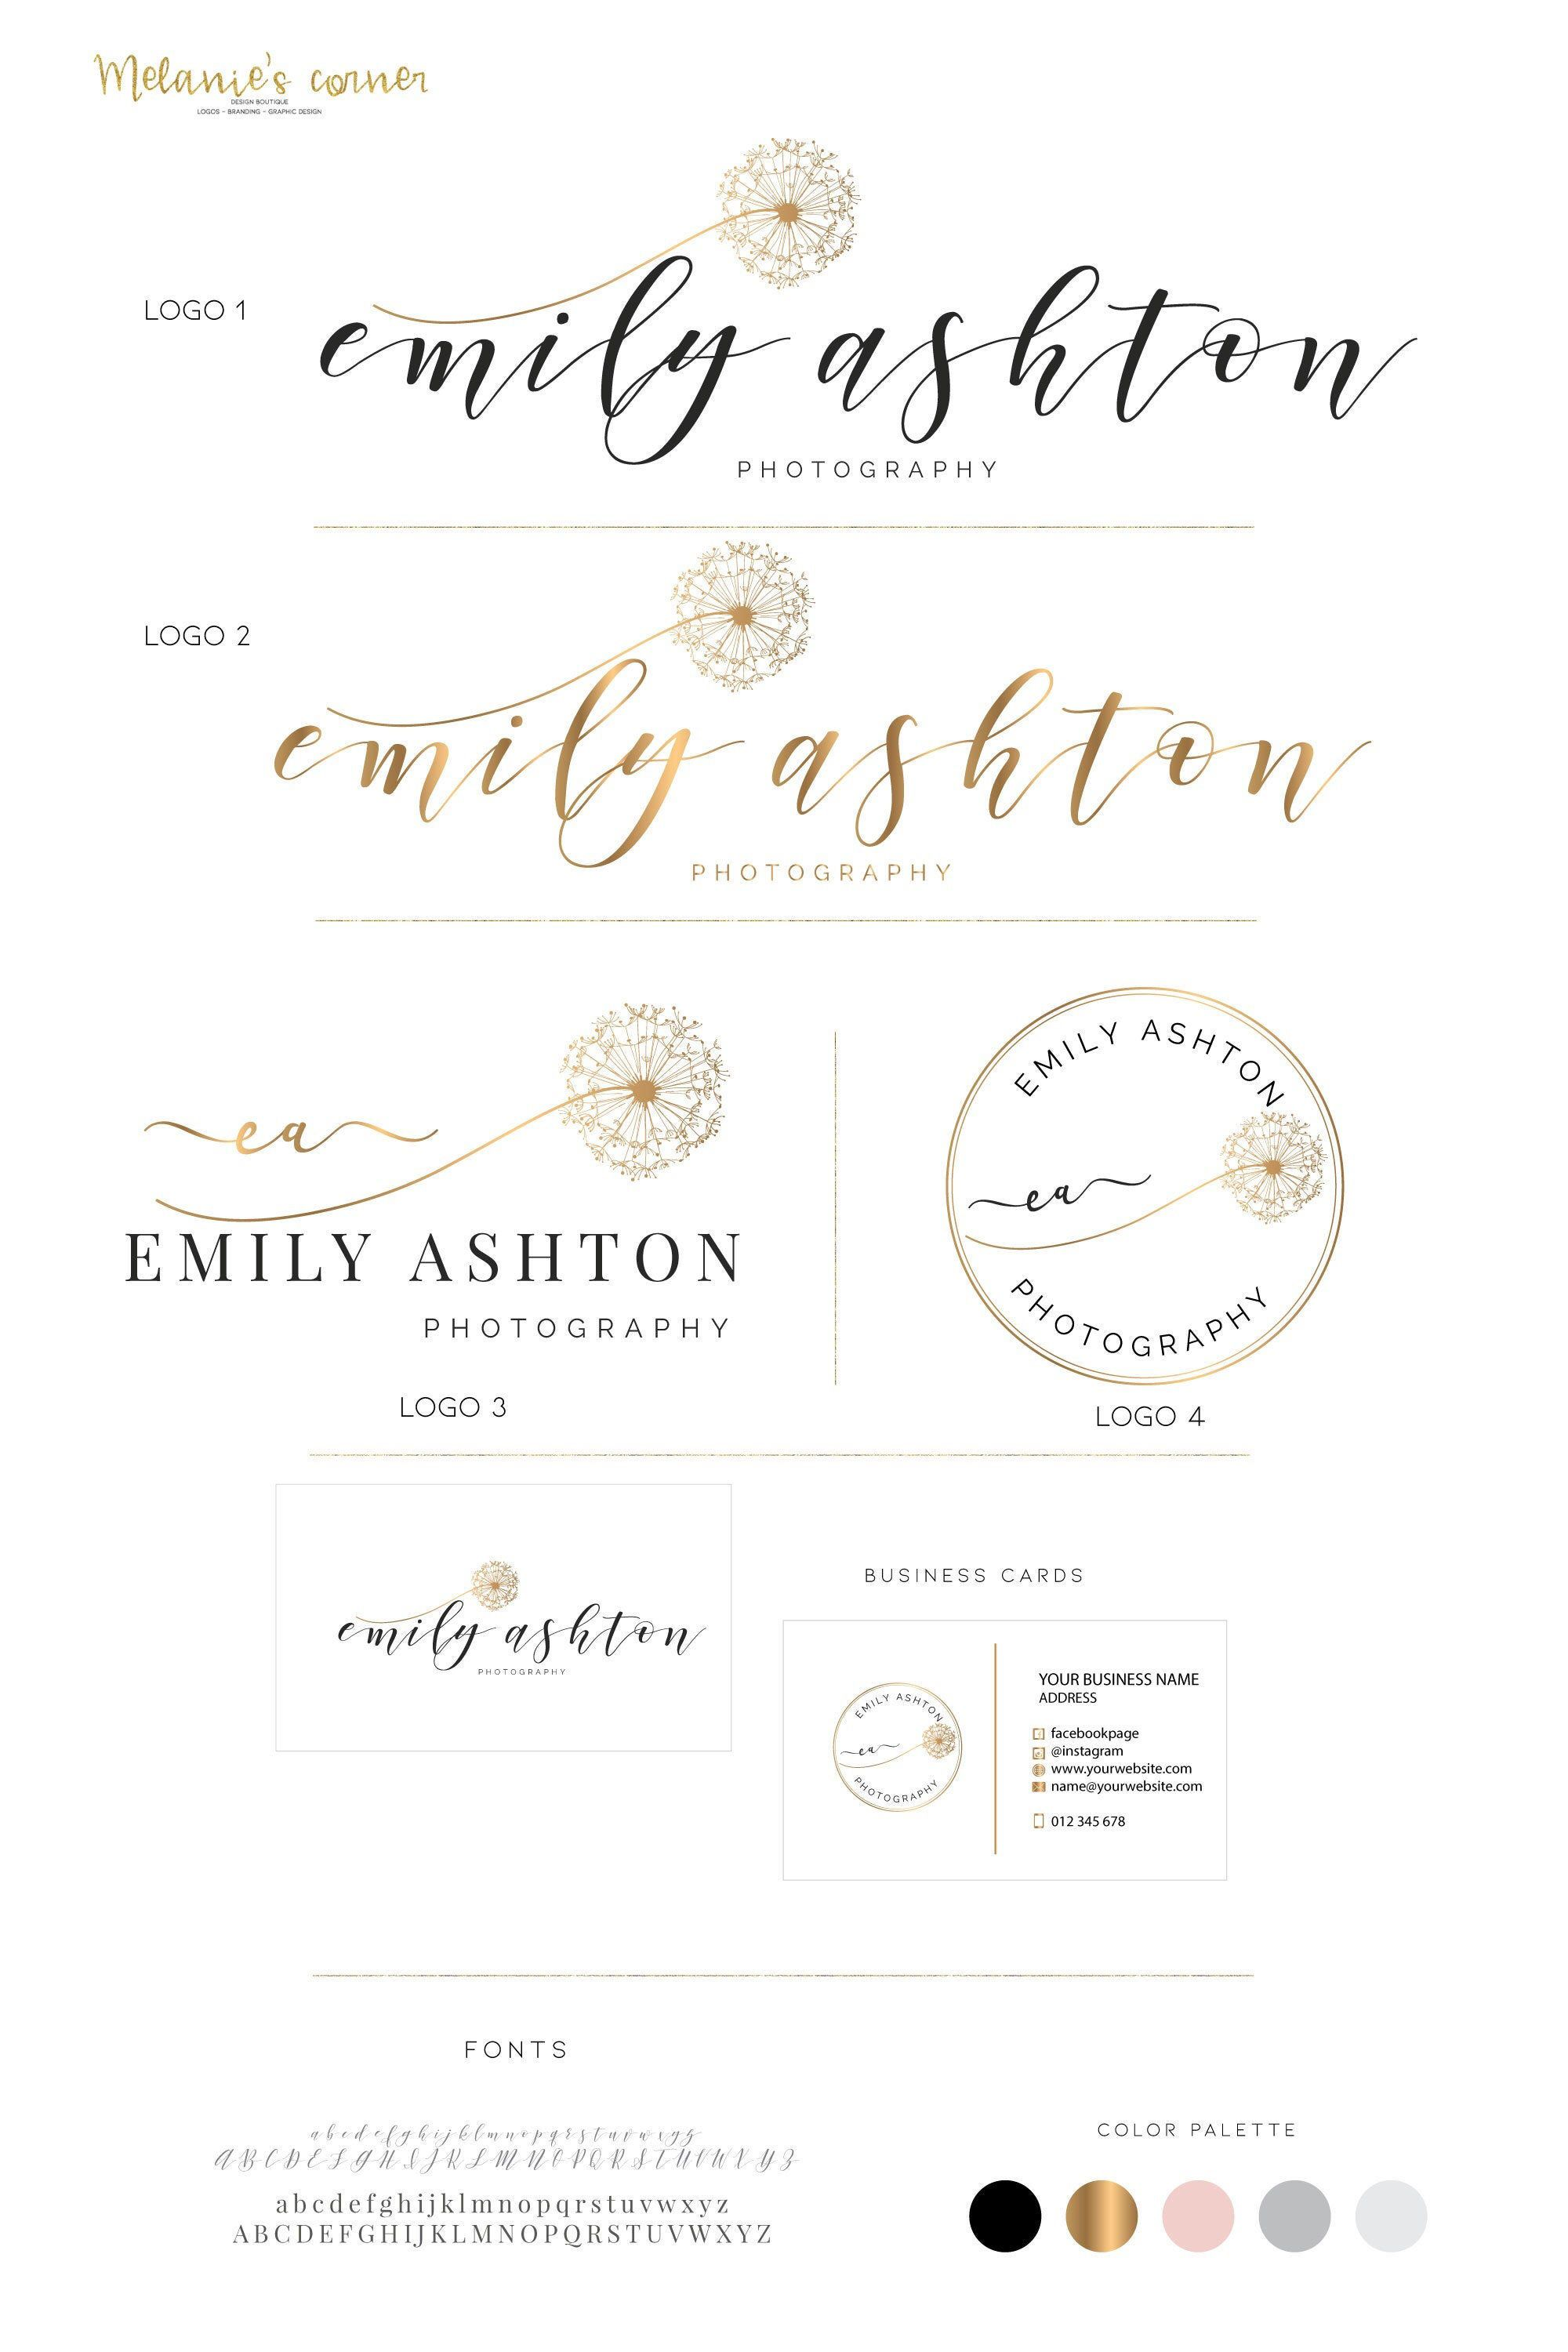 Pin on Photography logo designs